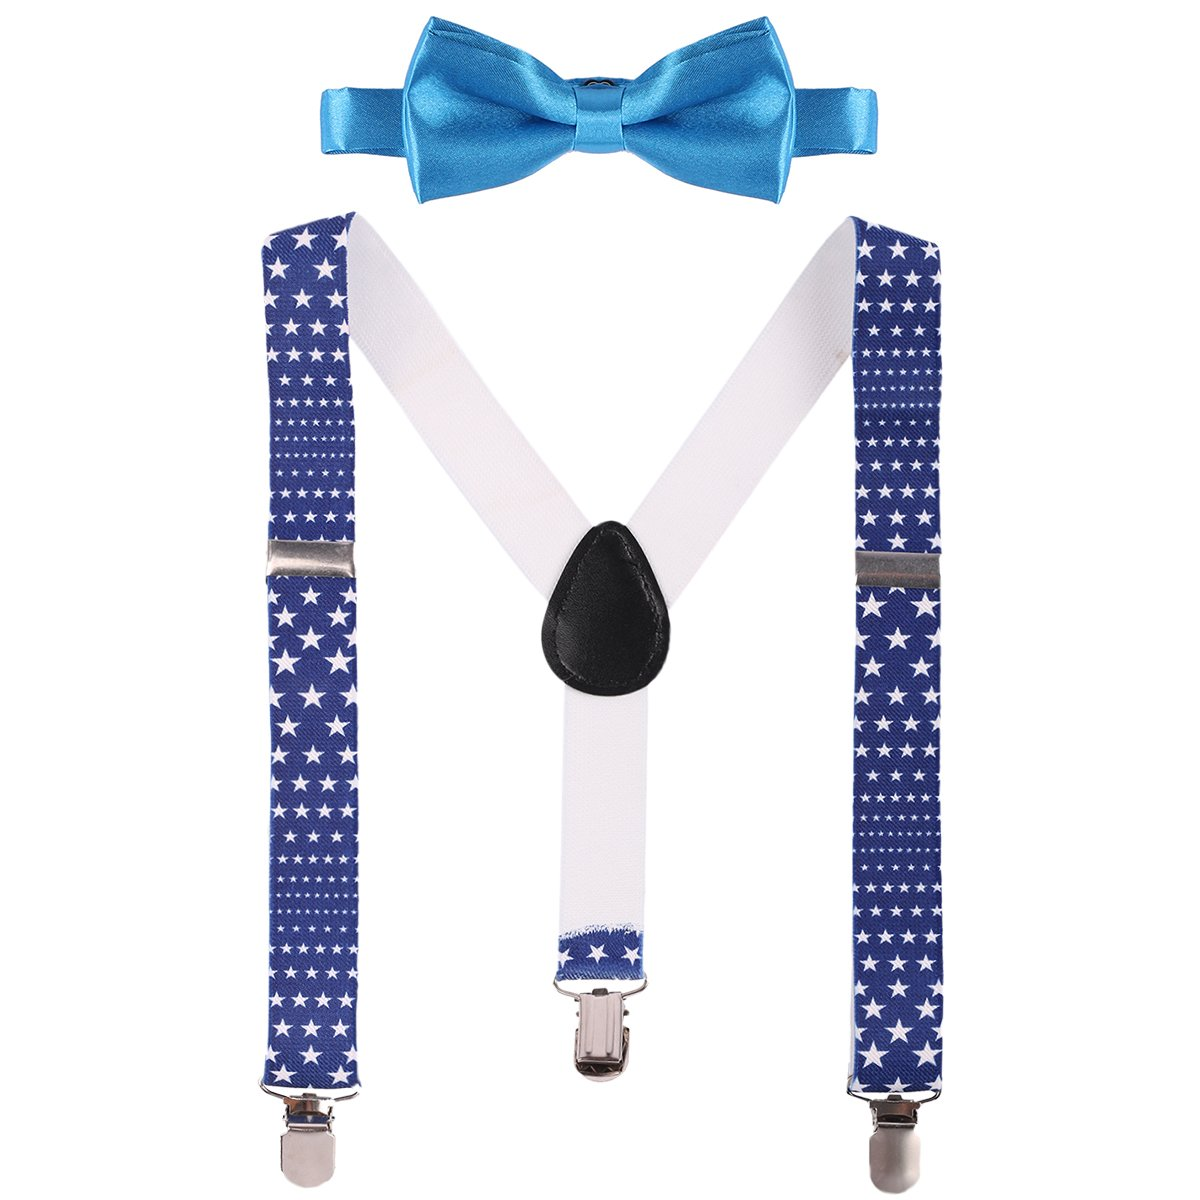 Baby Boys Adjustable Y Back Clip Suspenders Pre Tied Bowtie Set 1st/2nd Birthday Photo Wedding Party Outfits